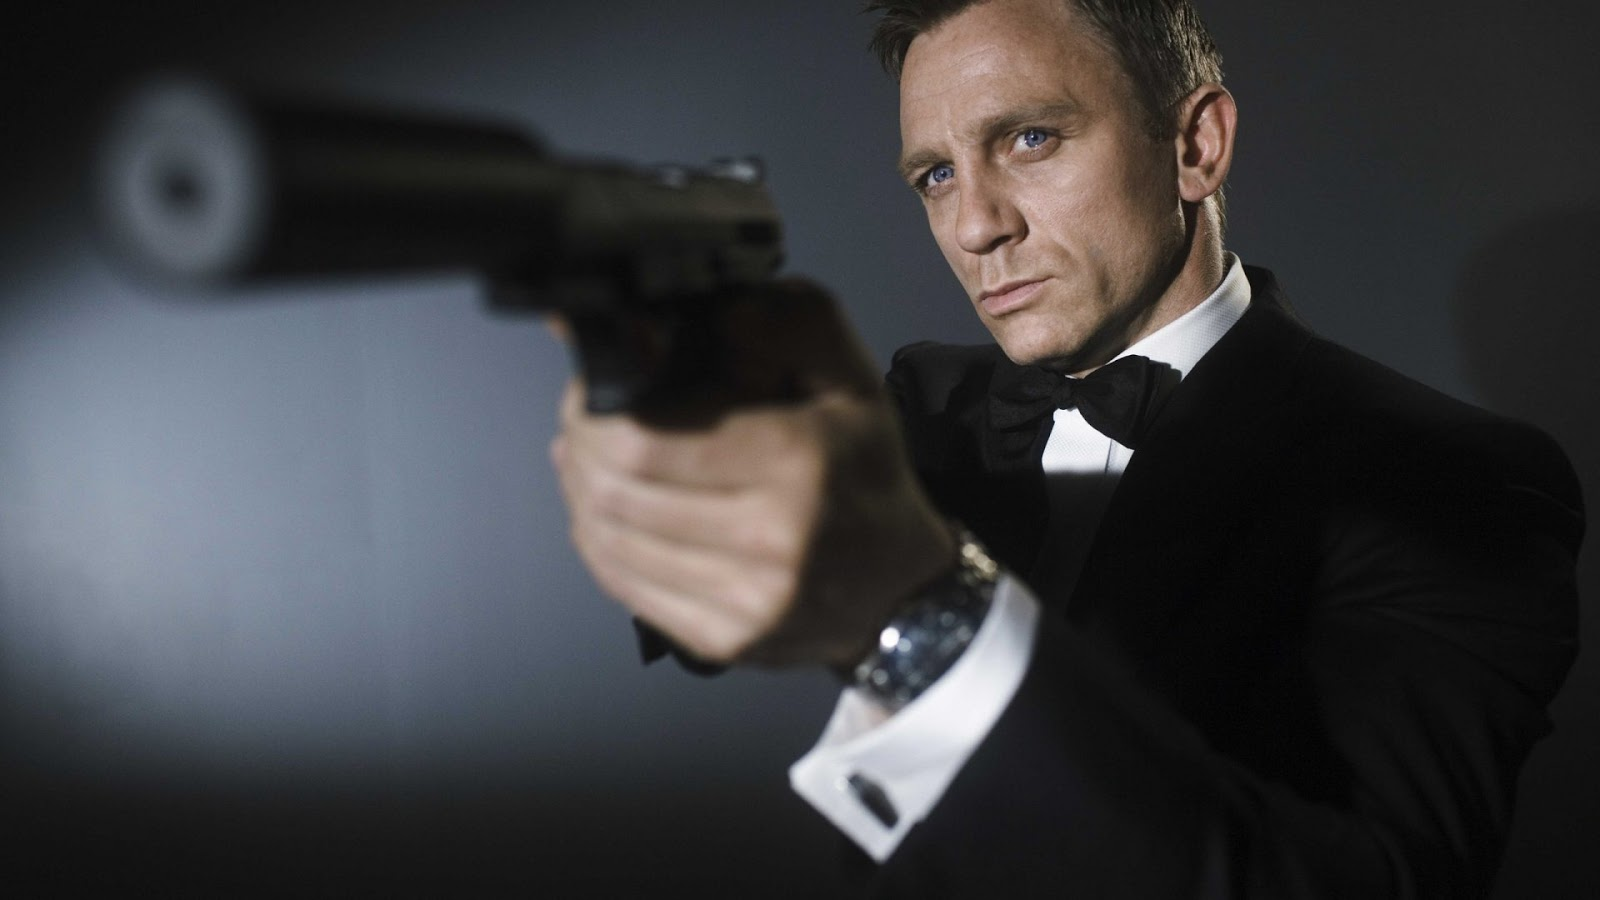 James bond with a gun hd wallpaper hd wallpaper - James bond images hd ...